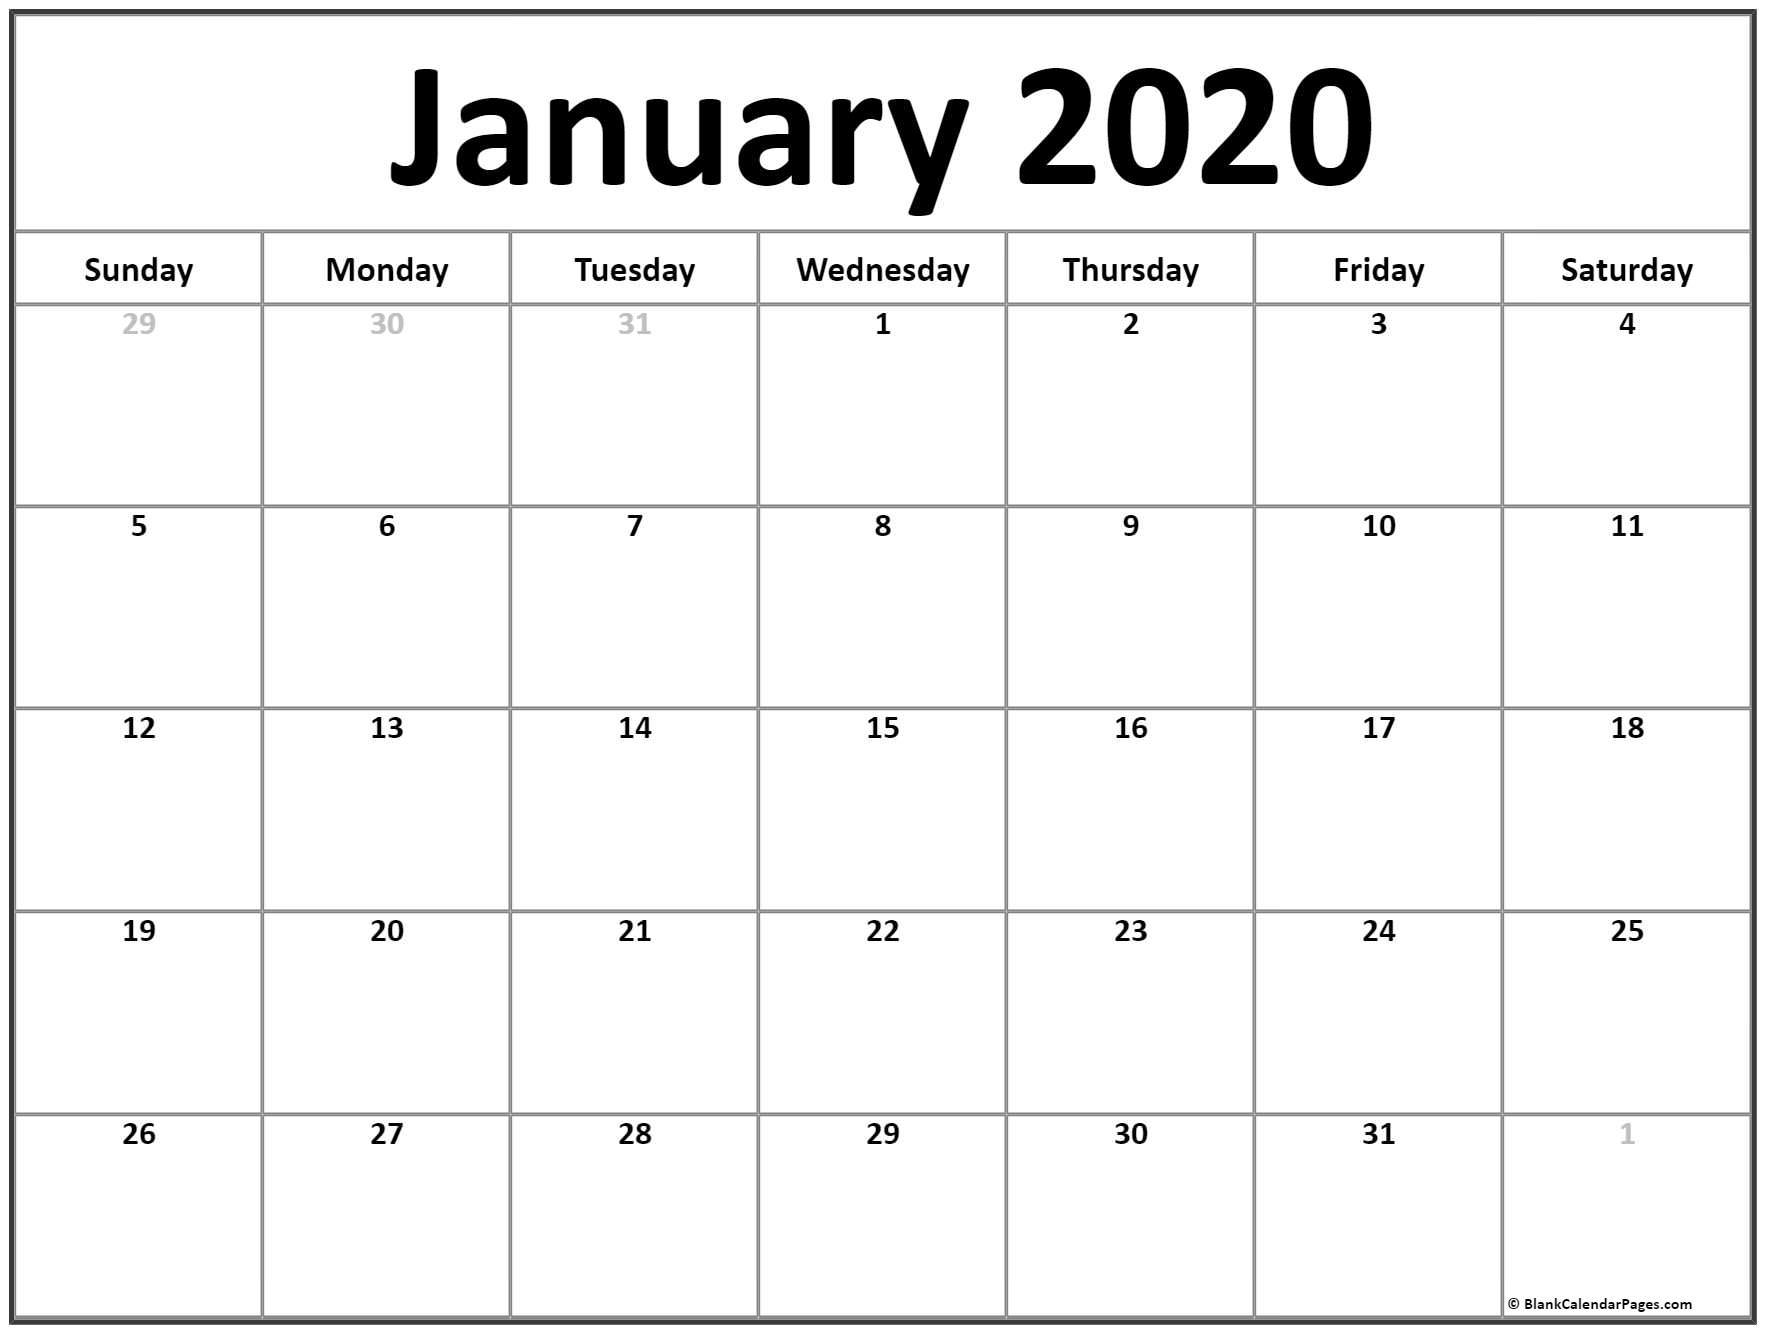 January 2020 Calendars Page - Togo.wpart.co